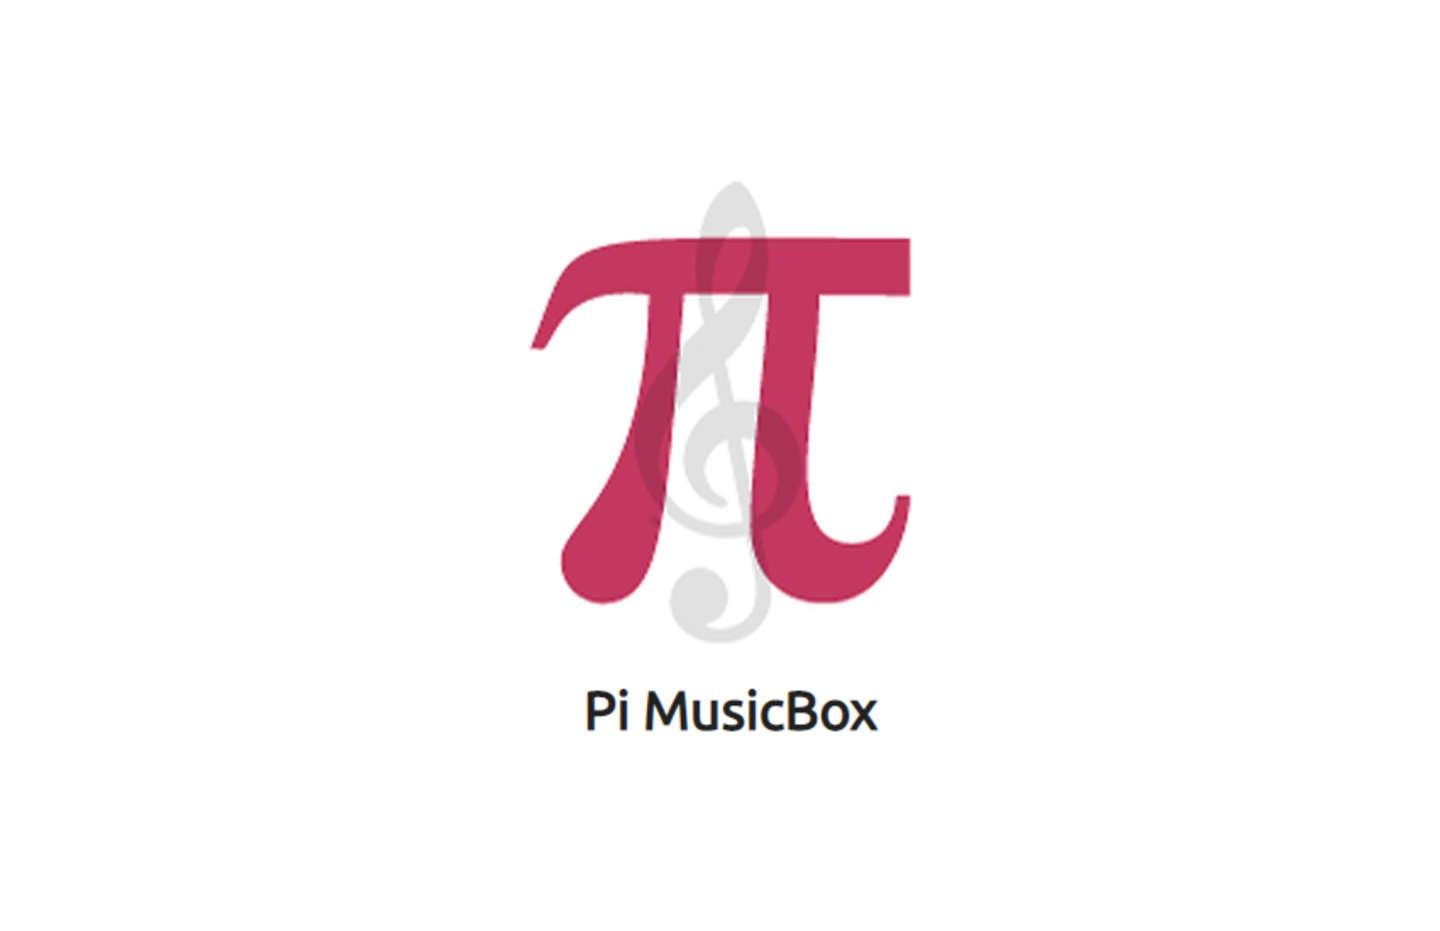 Install the Pi MusicBox image